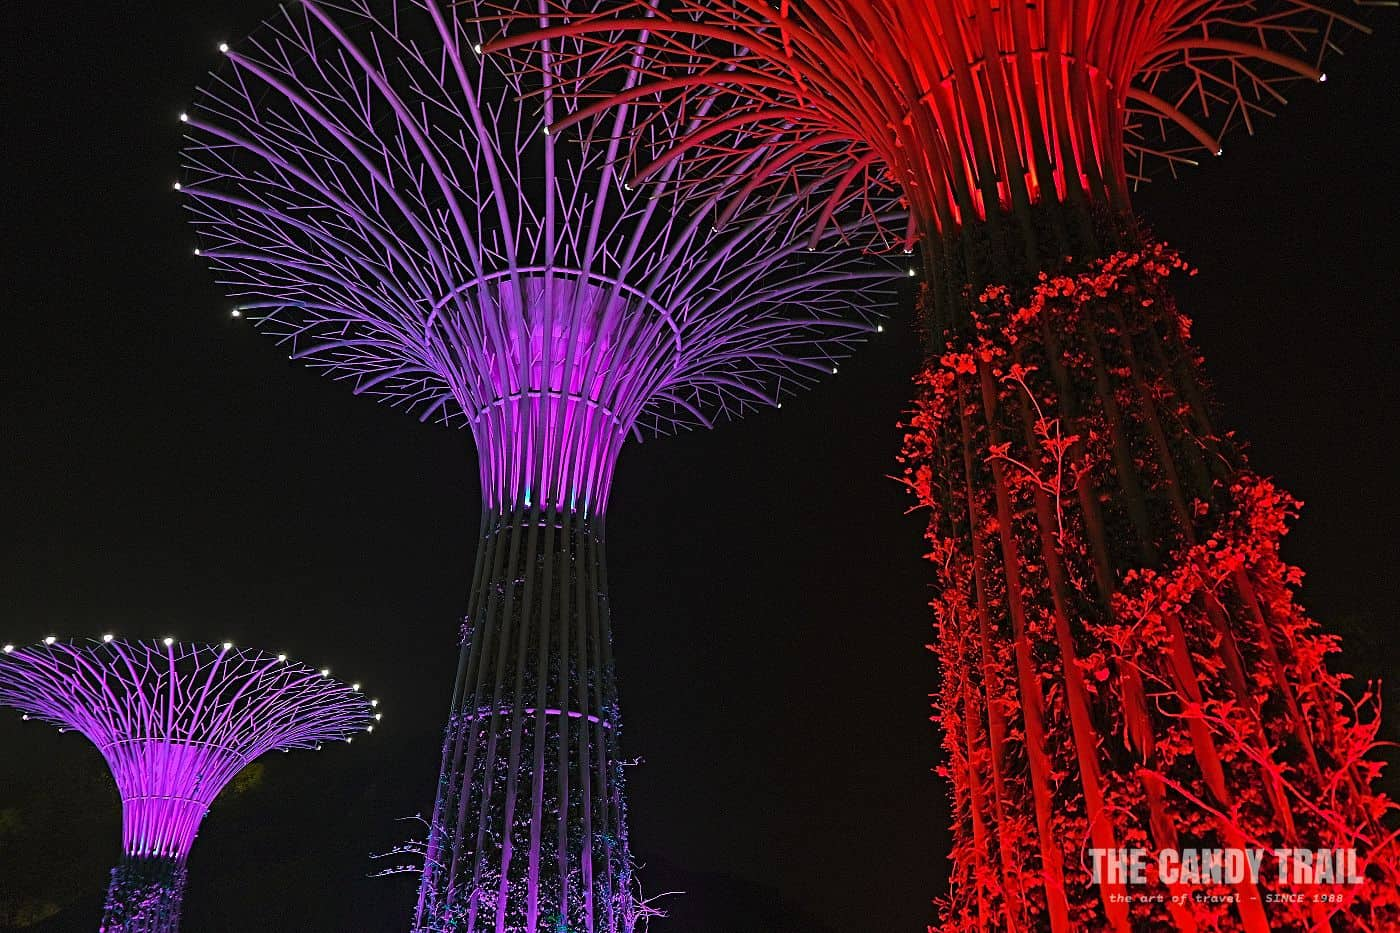 brightly lit tree sculptures in morganshan park china